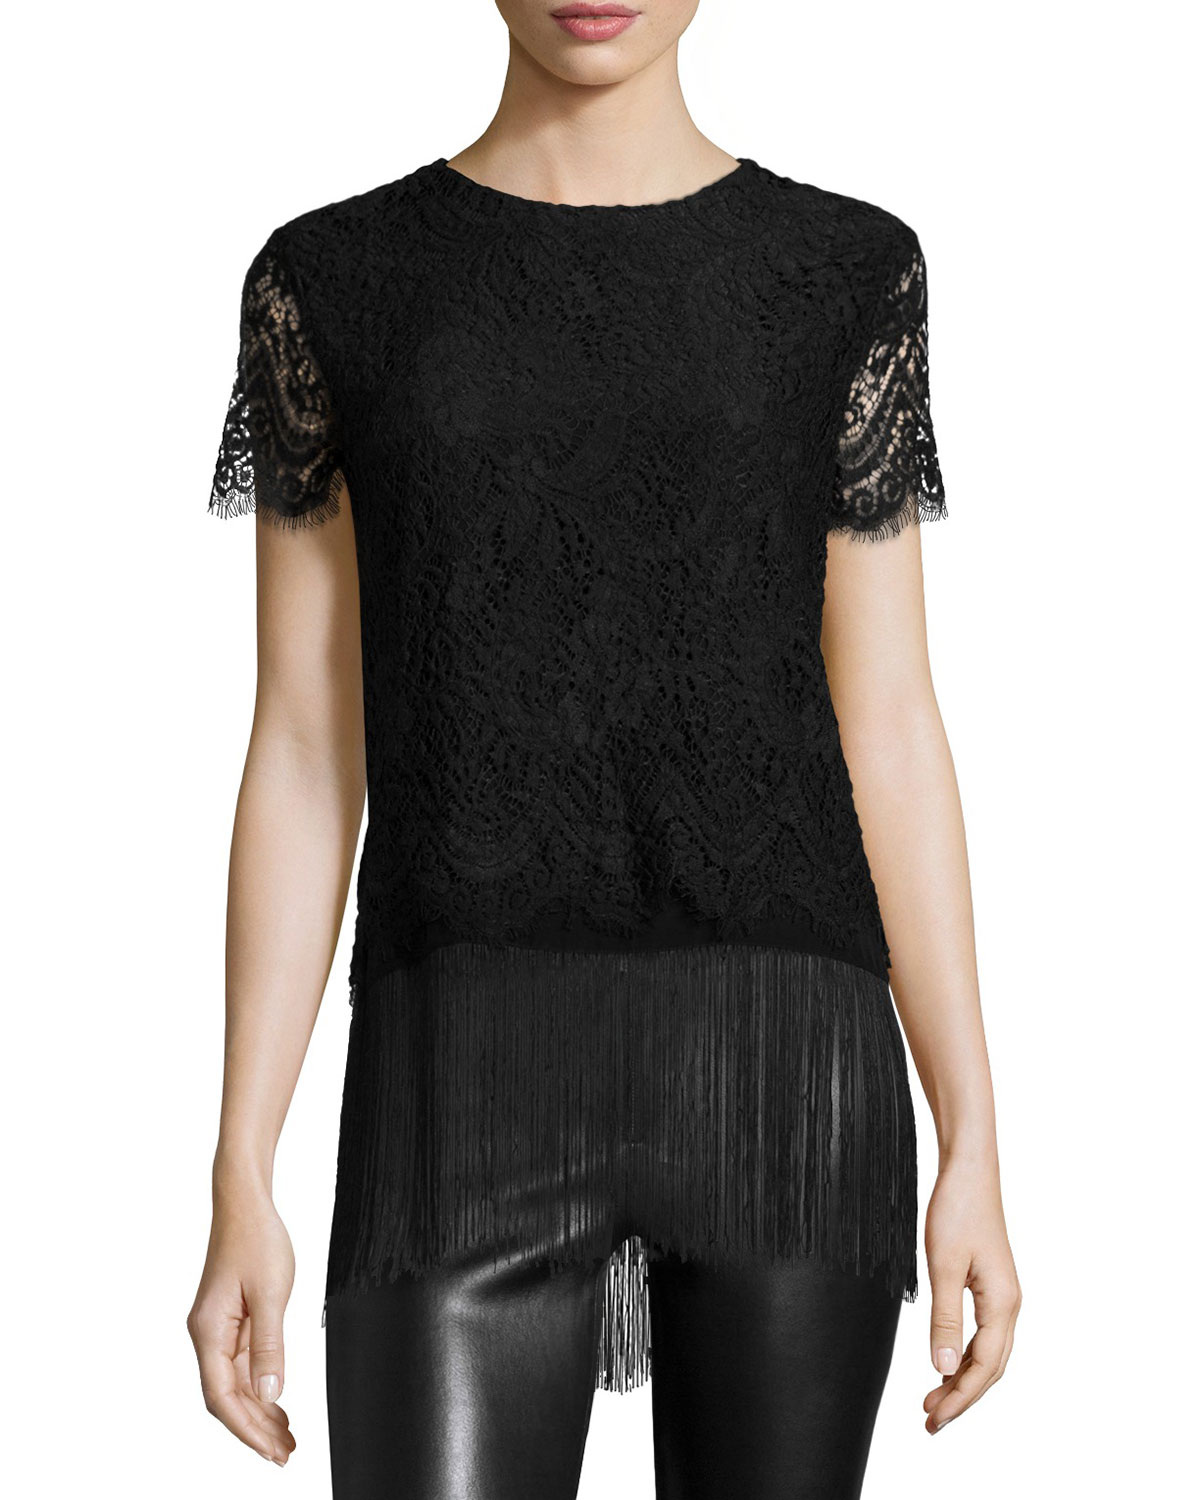 Short-Sleeve Lace Top W/Fringe Hem